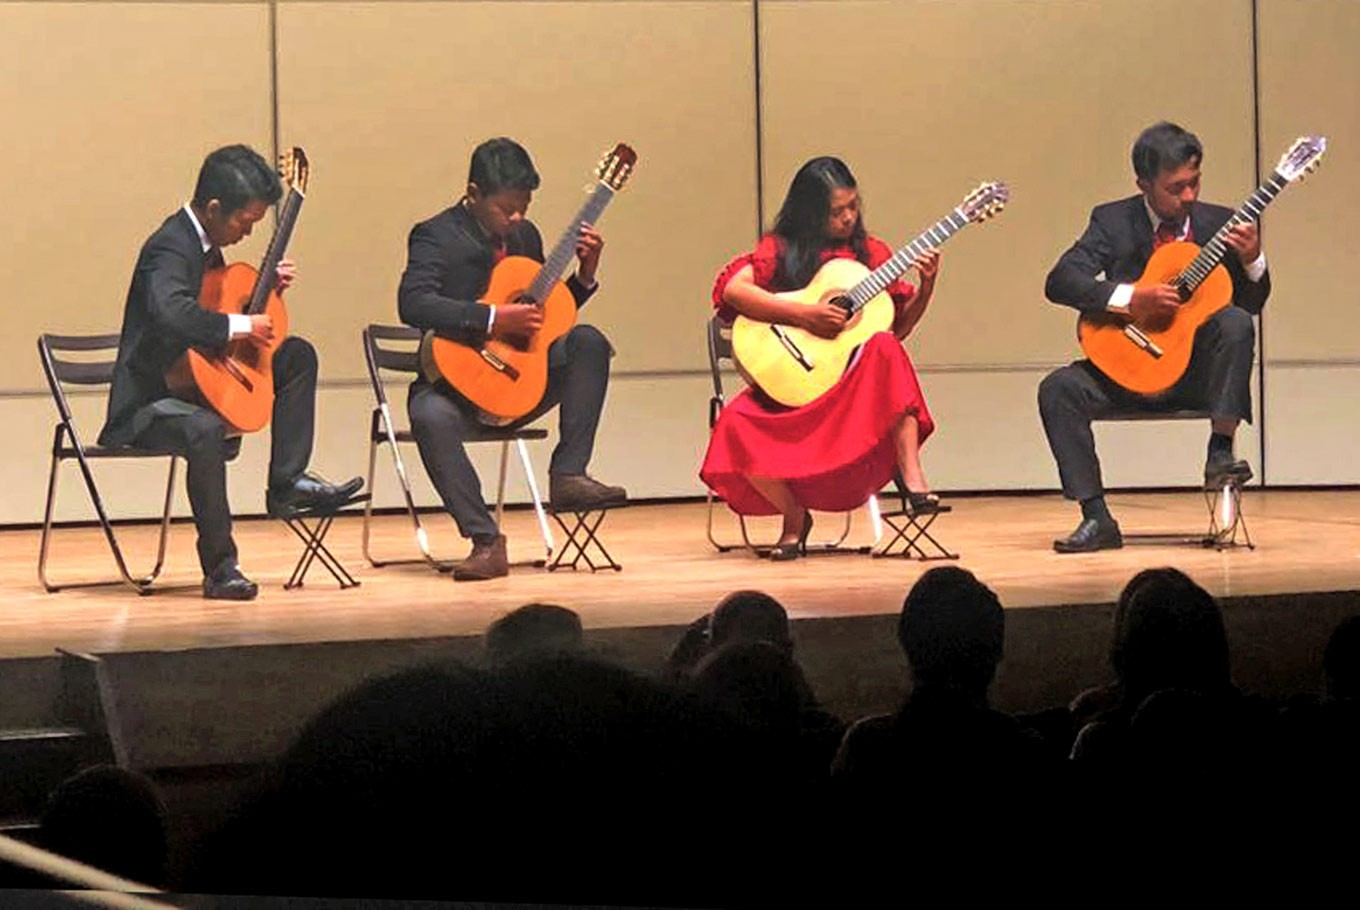 Indonesia wins big at classical guitar competition in Japan